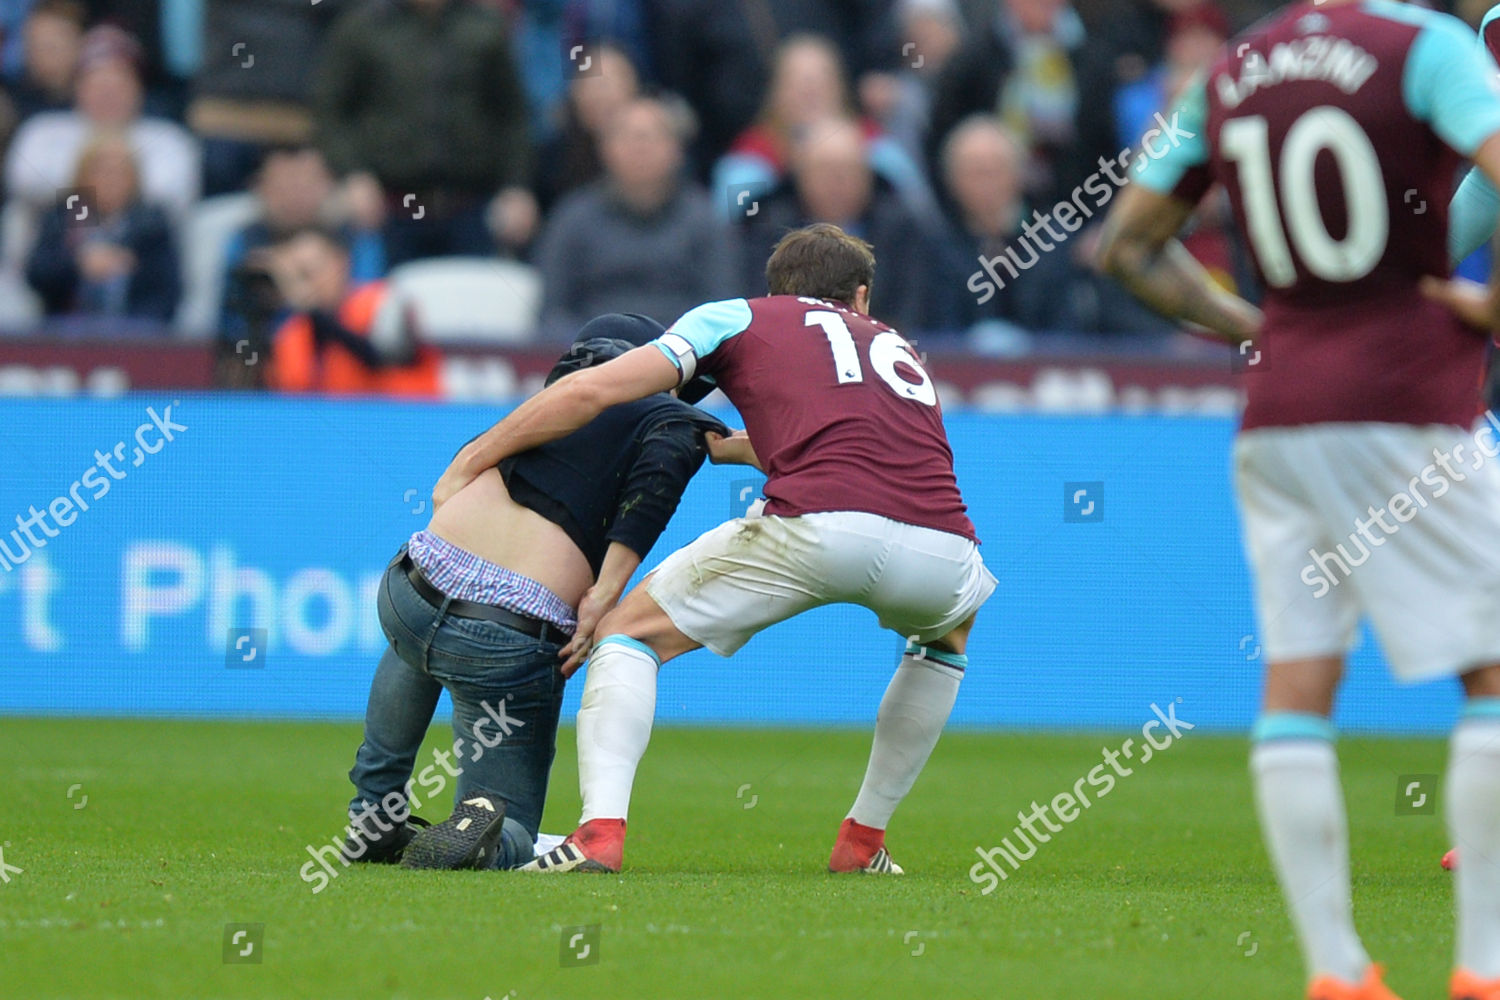 Mark Noble West Ham Tackles Pitch Invader Editorial Stock Photo Stock Image Shutterstock